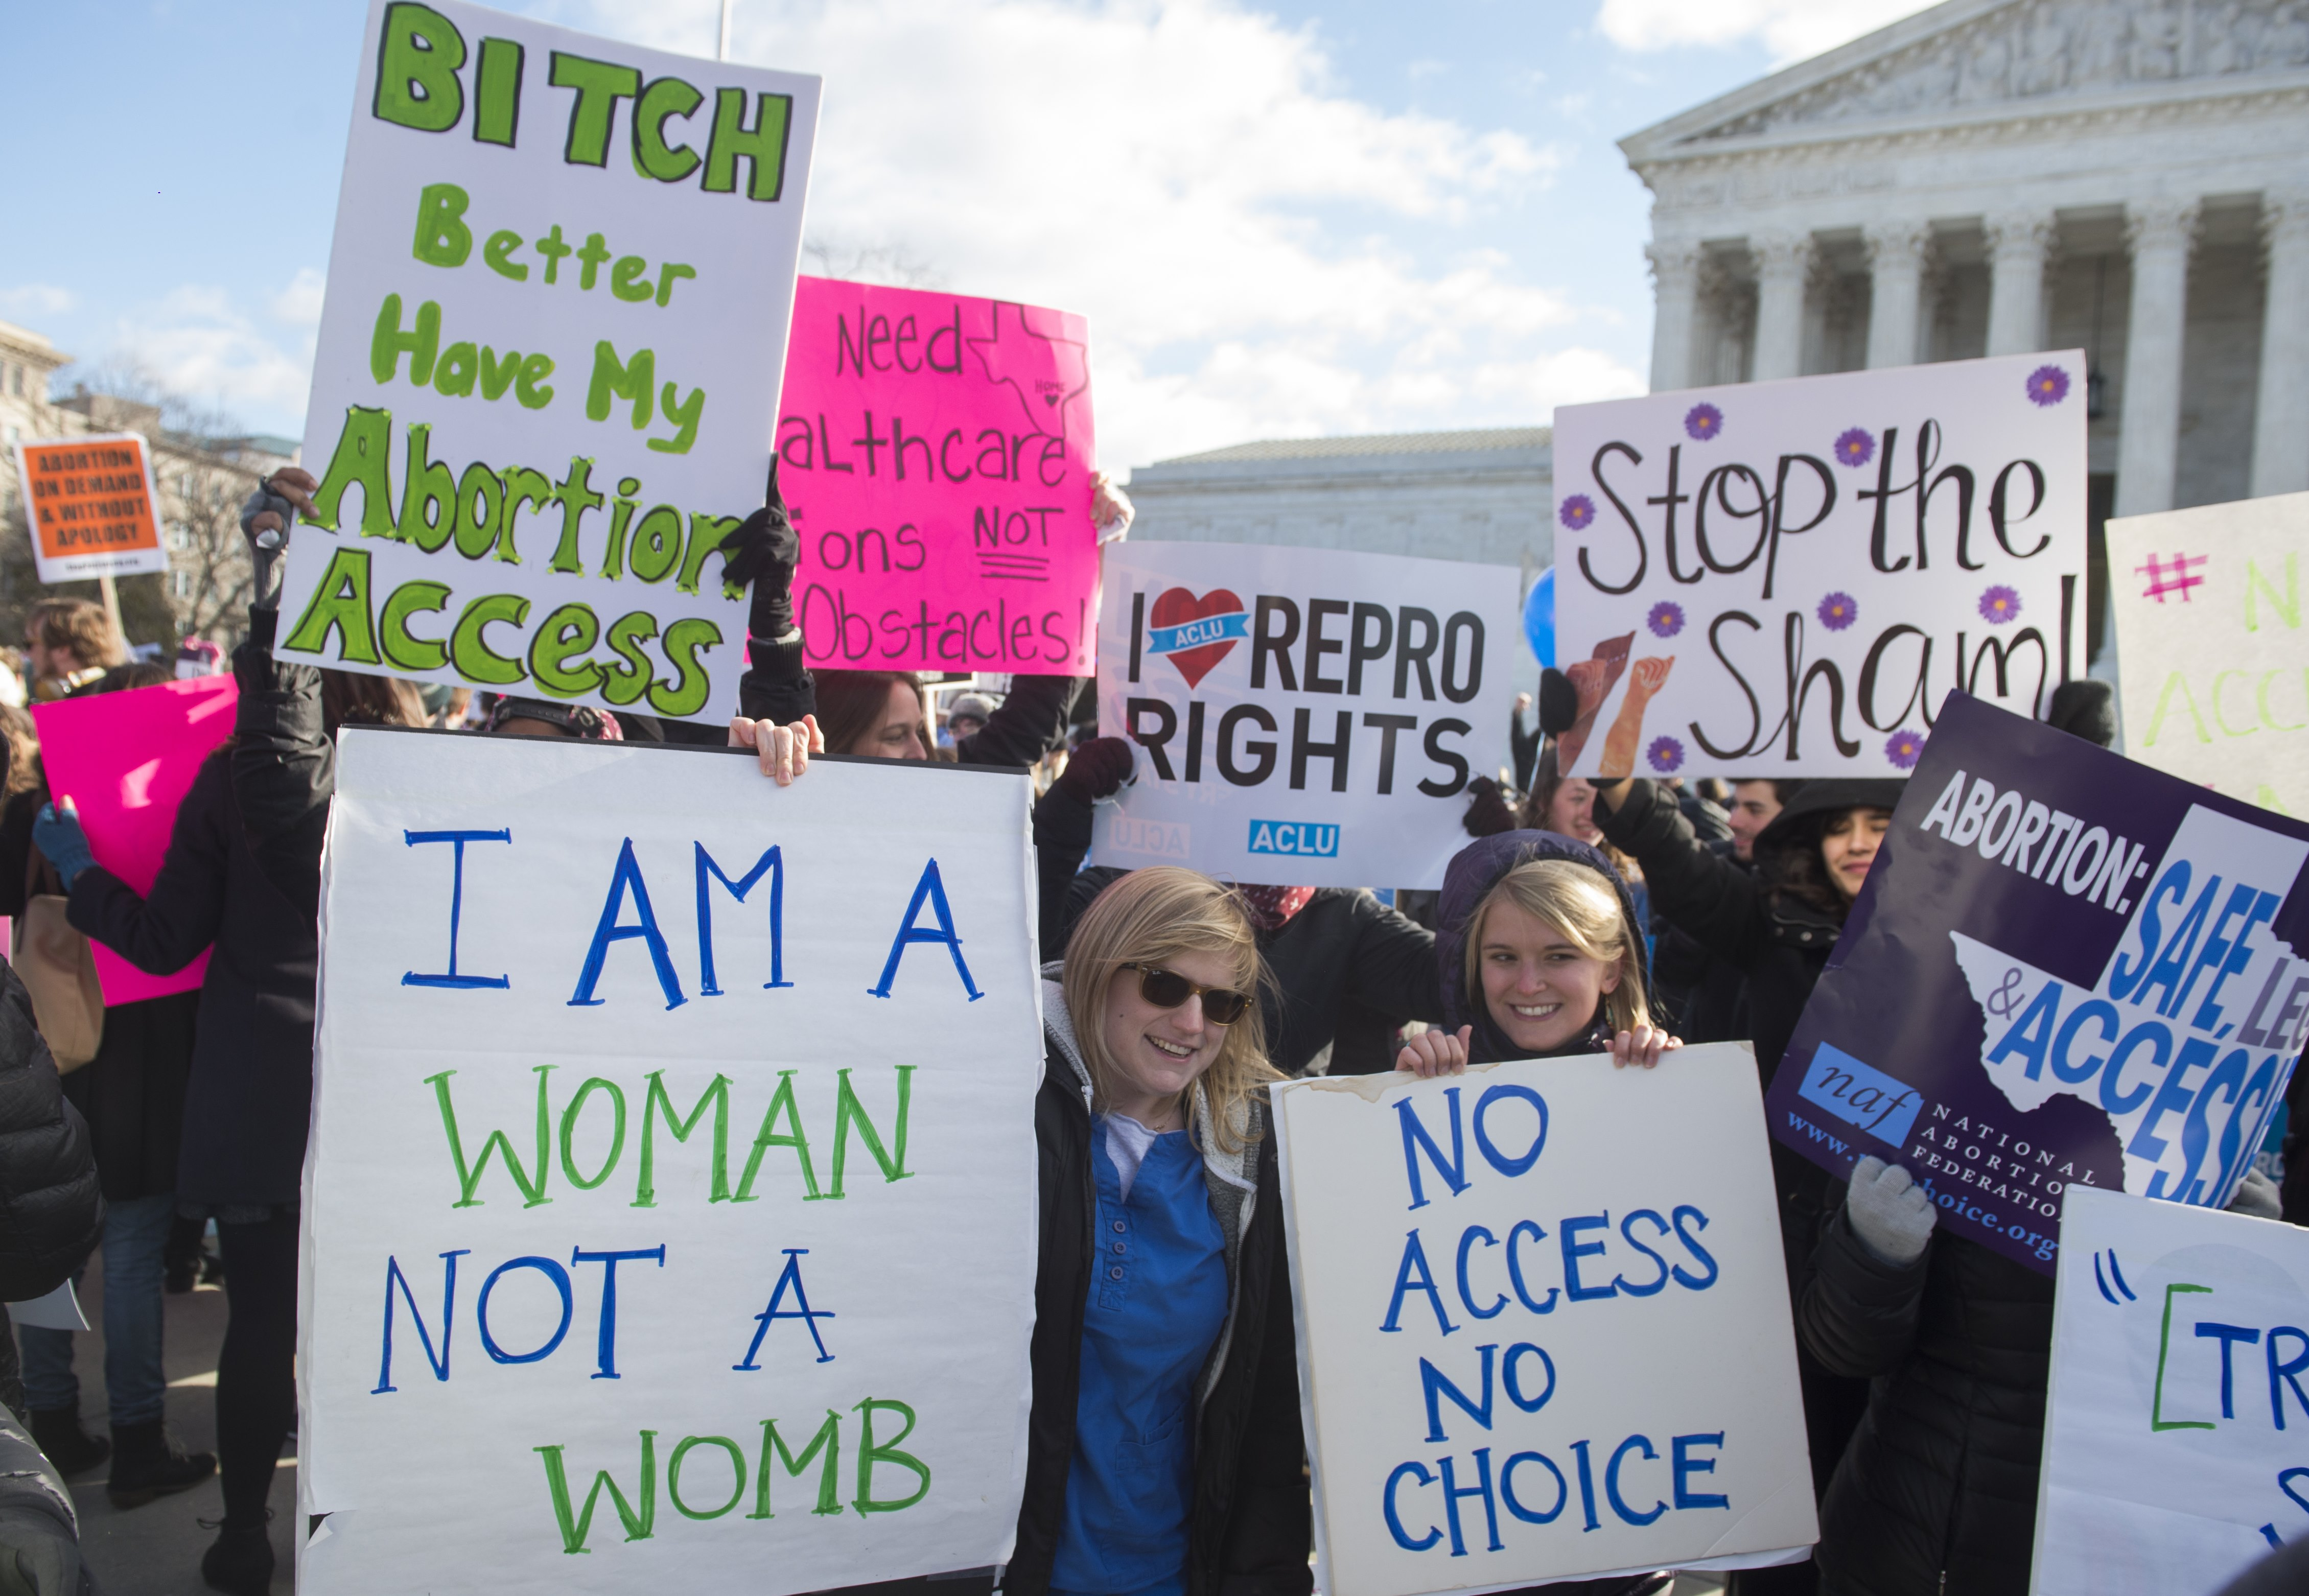 Supporters of legal access to abortion rally outside the Supreme Court in Washington, DC, March 2, 2016, as the Court hears oral arguments in the case of Whole Woman's Health v. Hellerstedt, which deals with access to abortion.